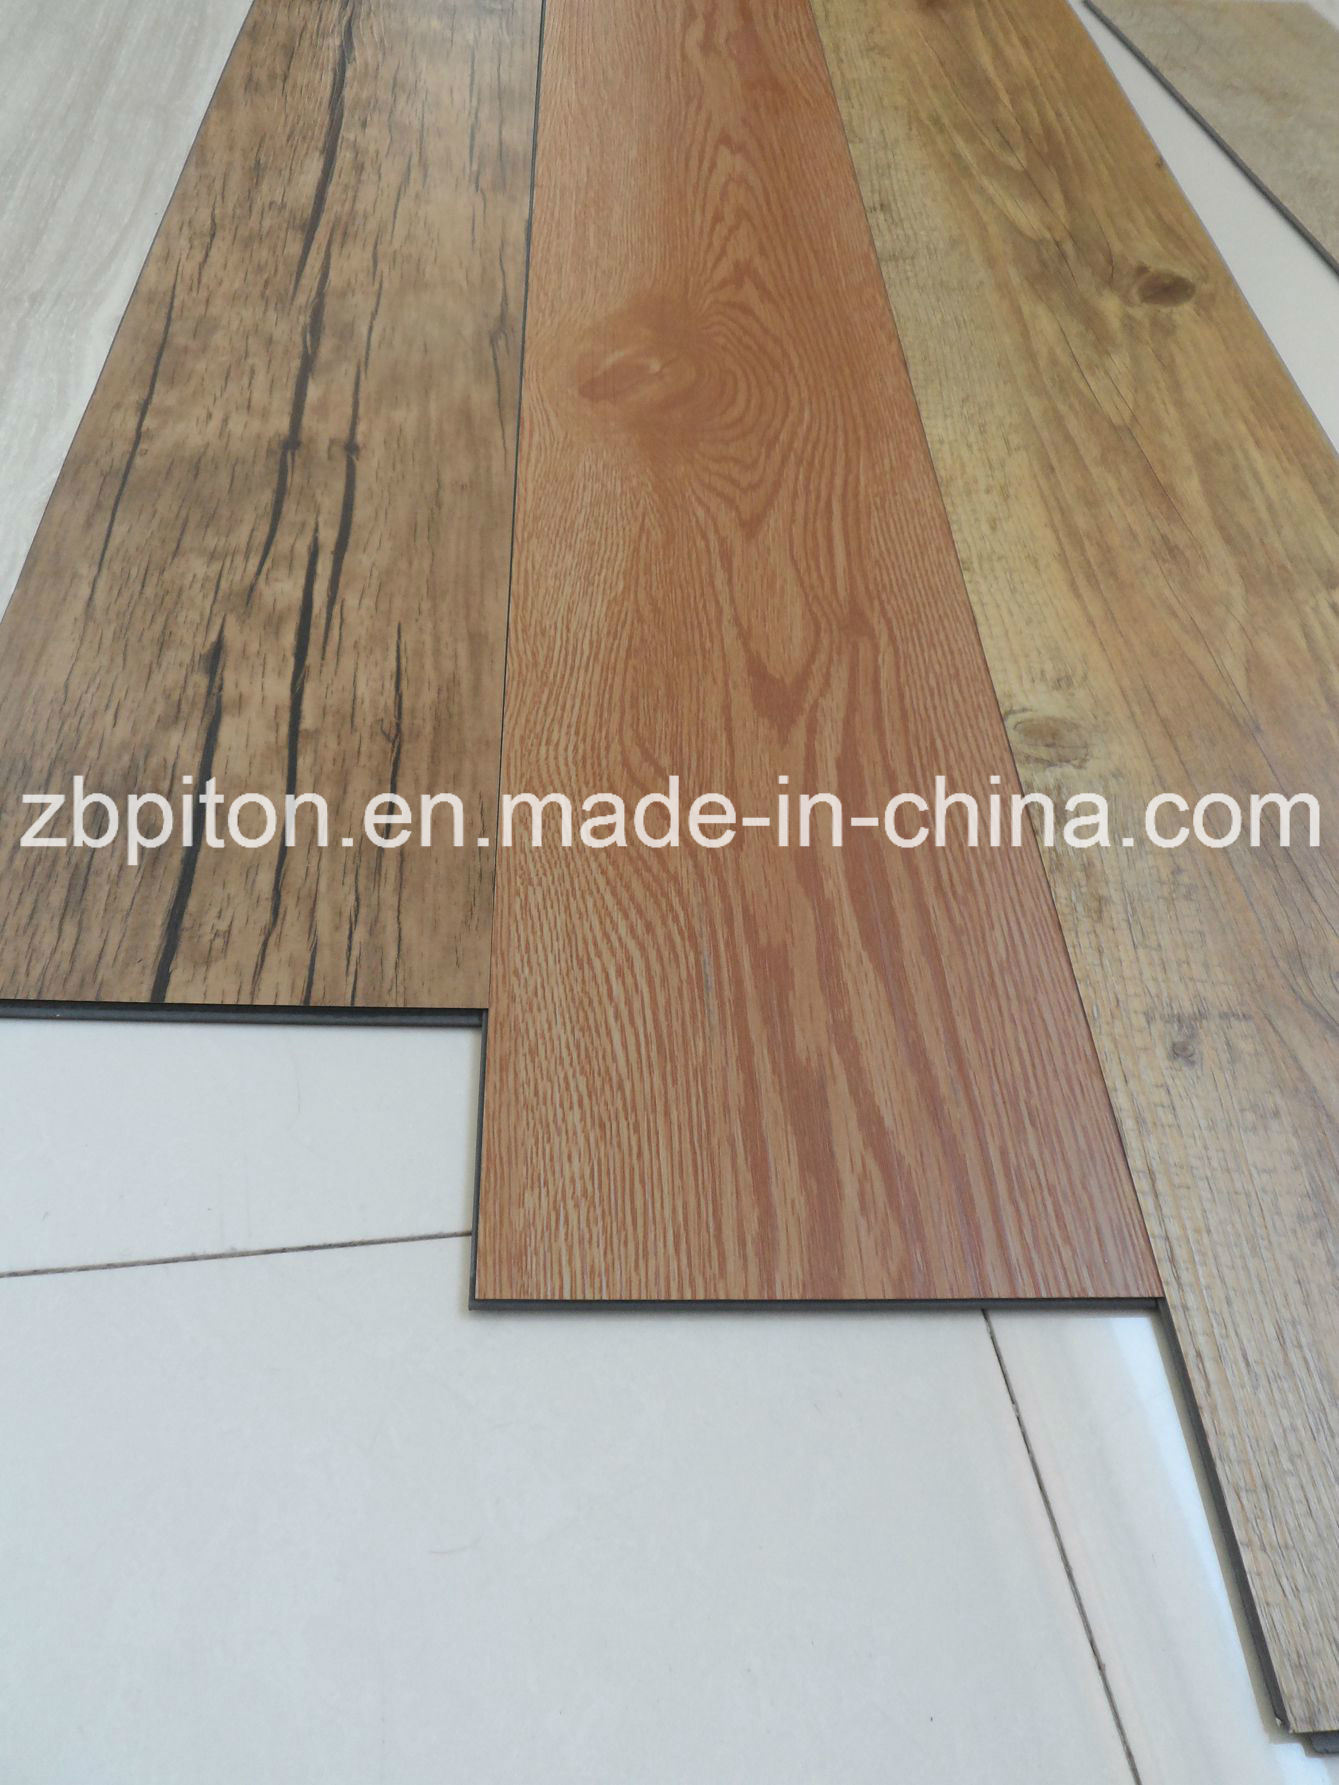 china unilin click pvc vinyl flooring photos pictures. Black Bedroom Furniture Sets. Home Design Ideas